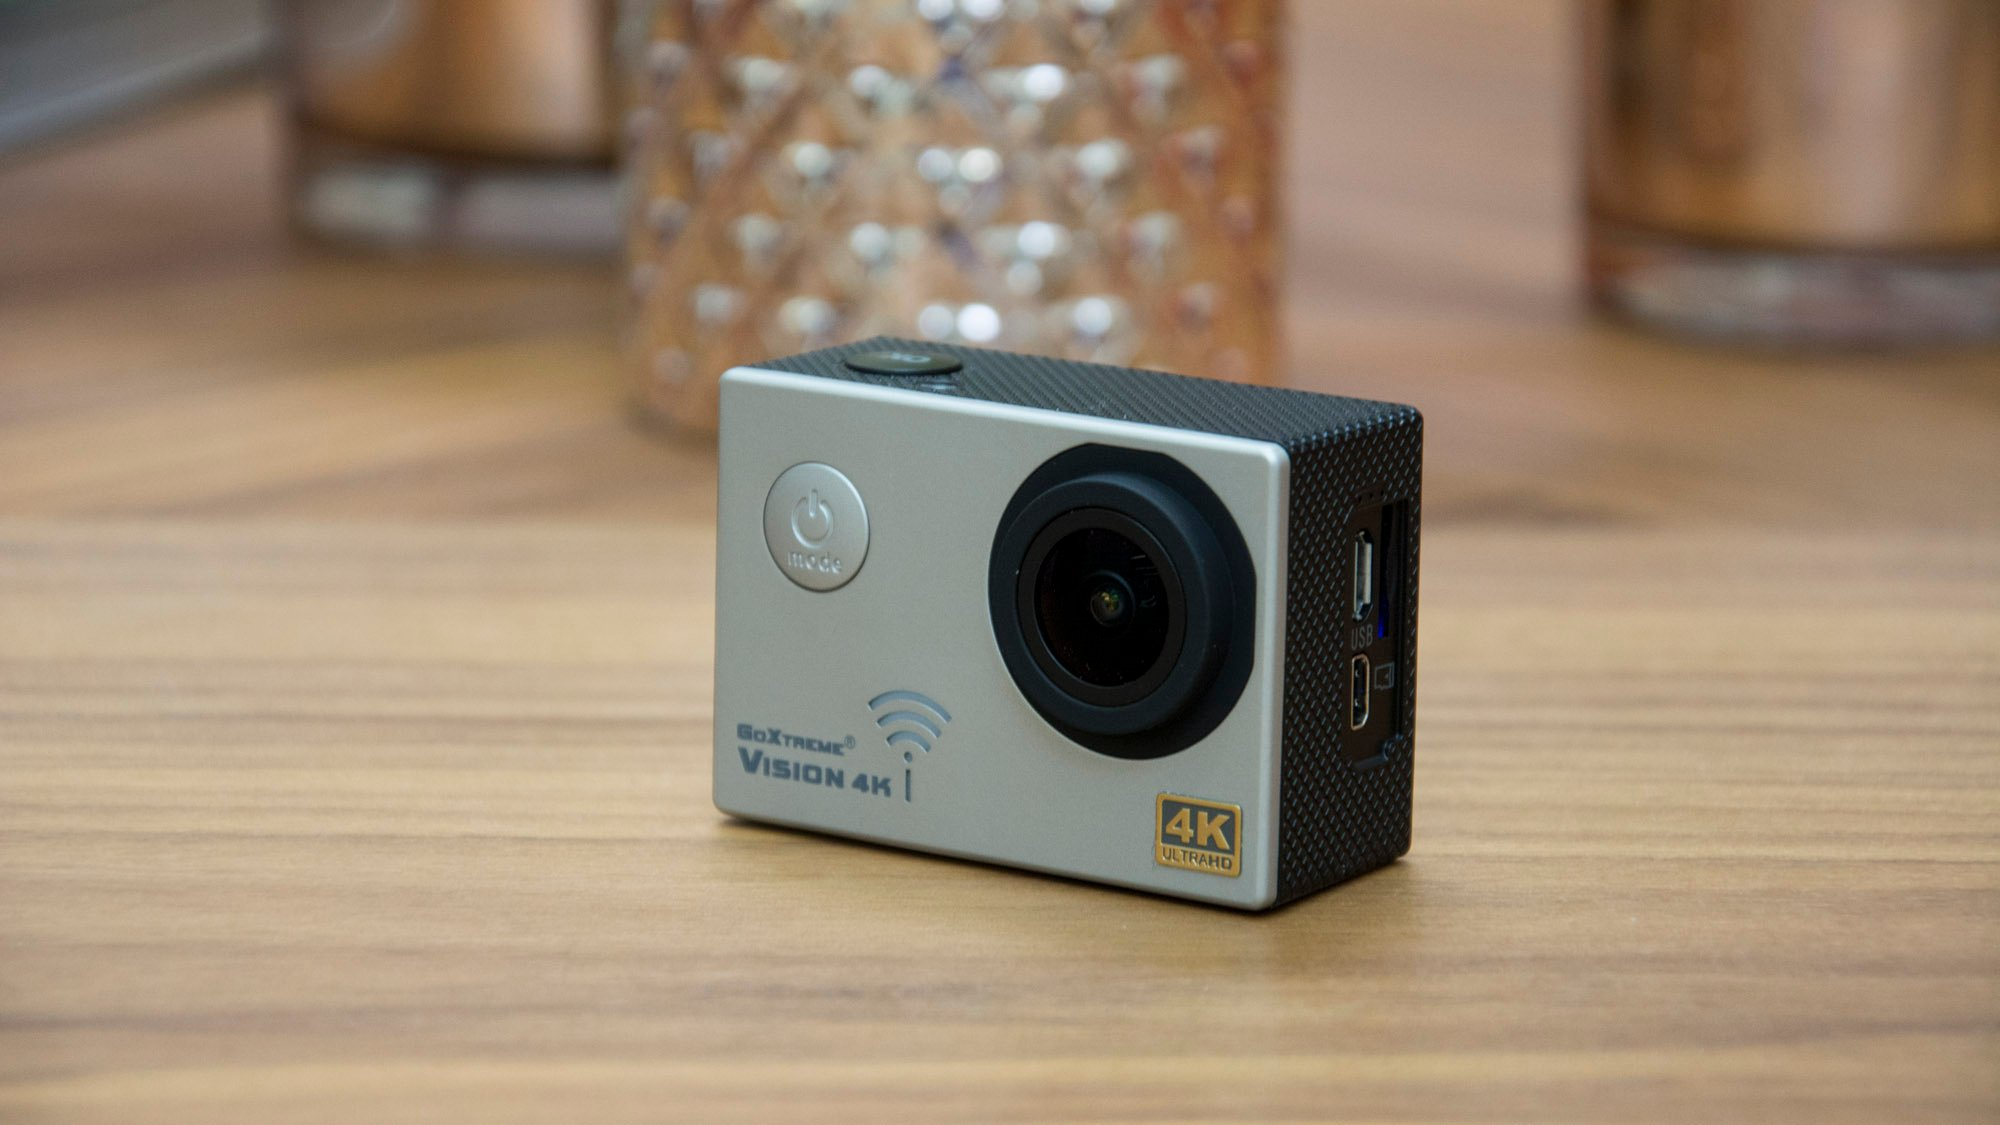 Goxtreme Vision 4k Review A Low Cost Action Camera But Is It X Pro 6s 12 Mp For Around 70 Theres The Akaso Ek7000 And Apeman If You Want An Ultra Budget Yi Discovery At 43